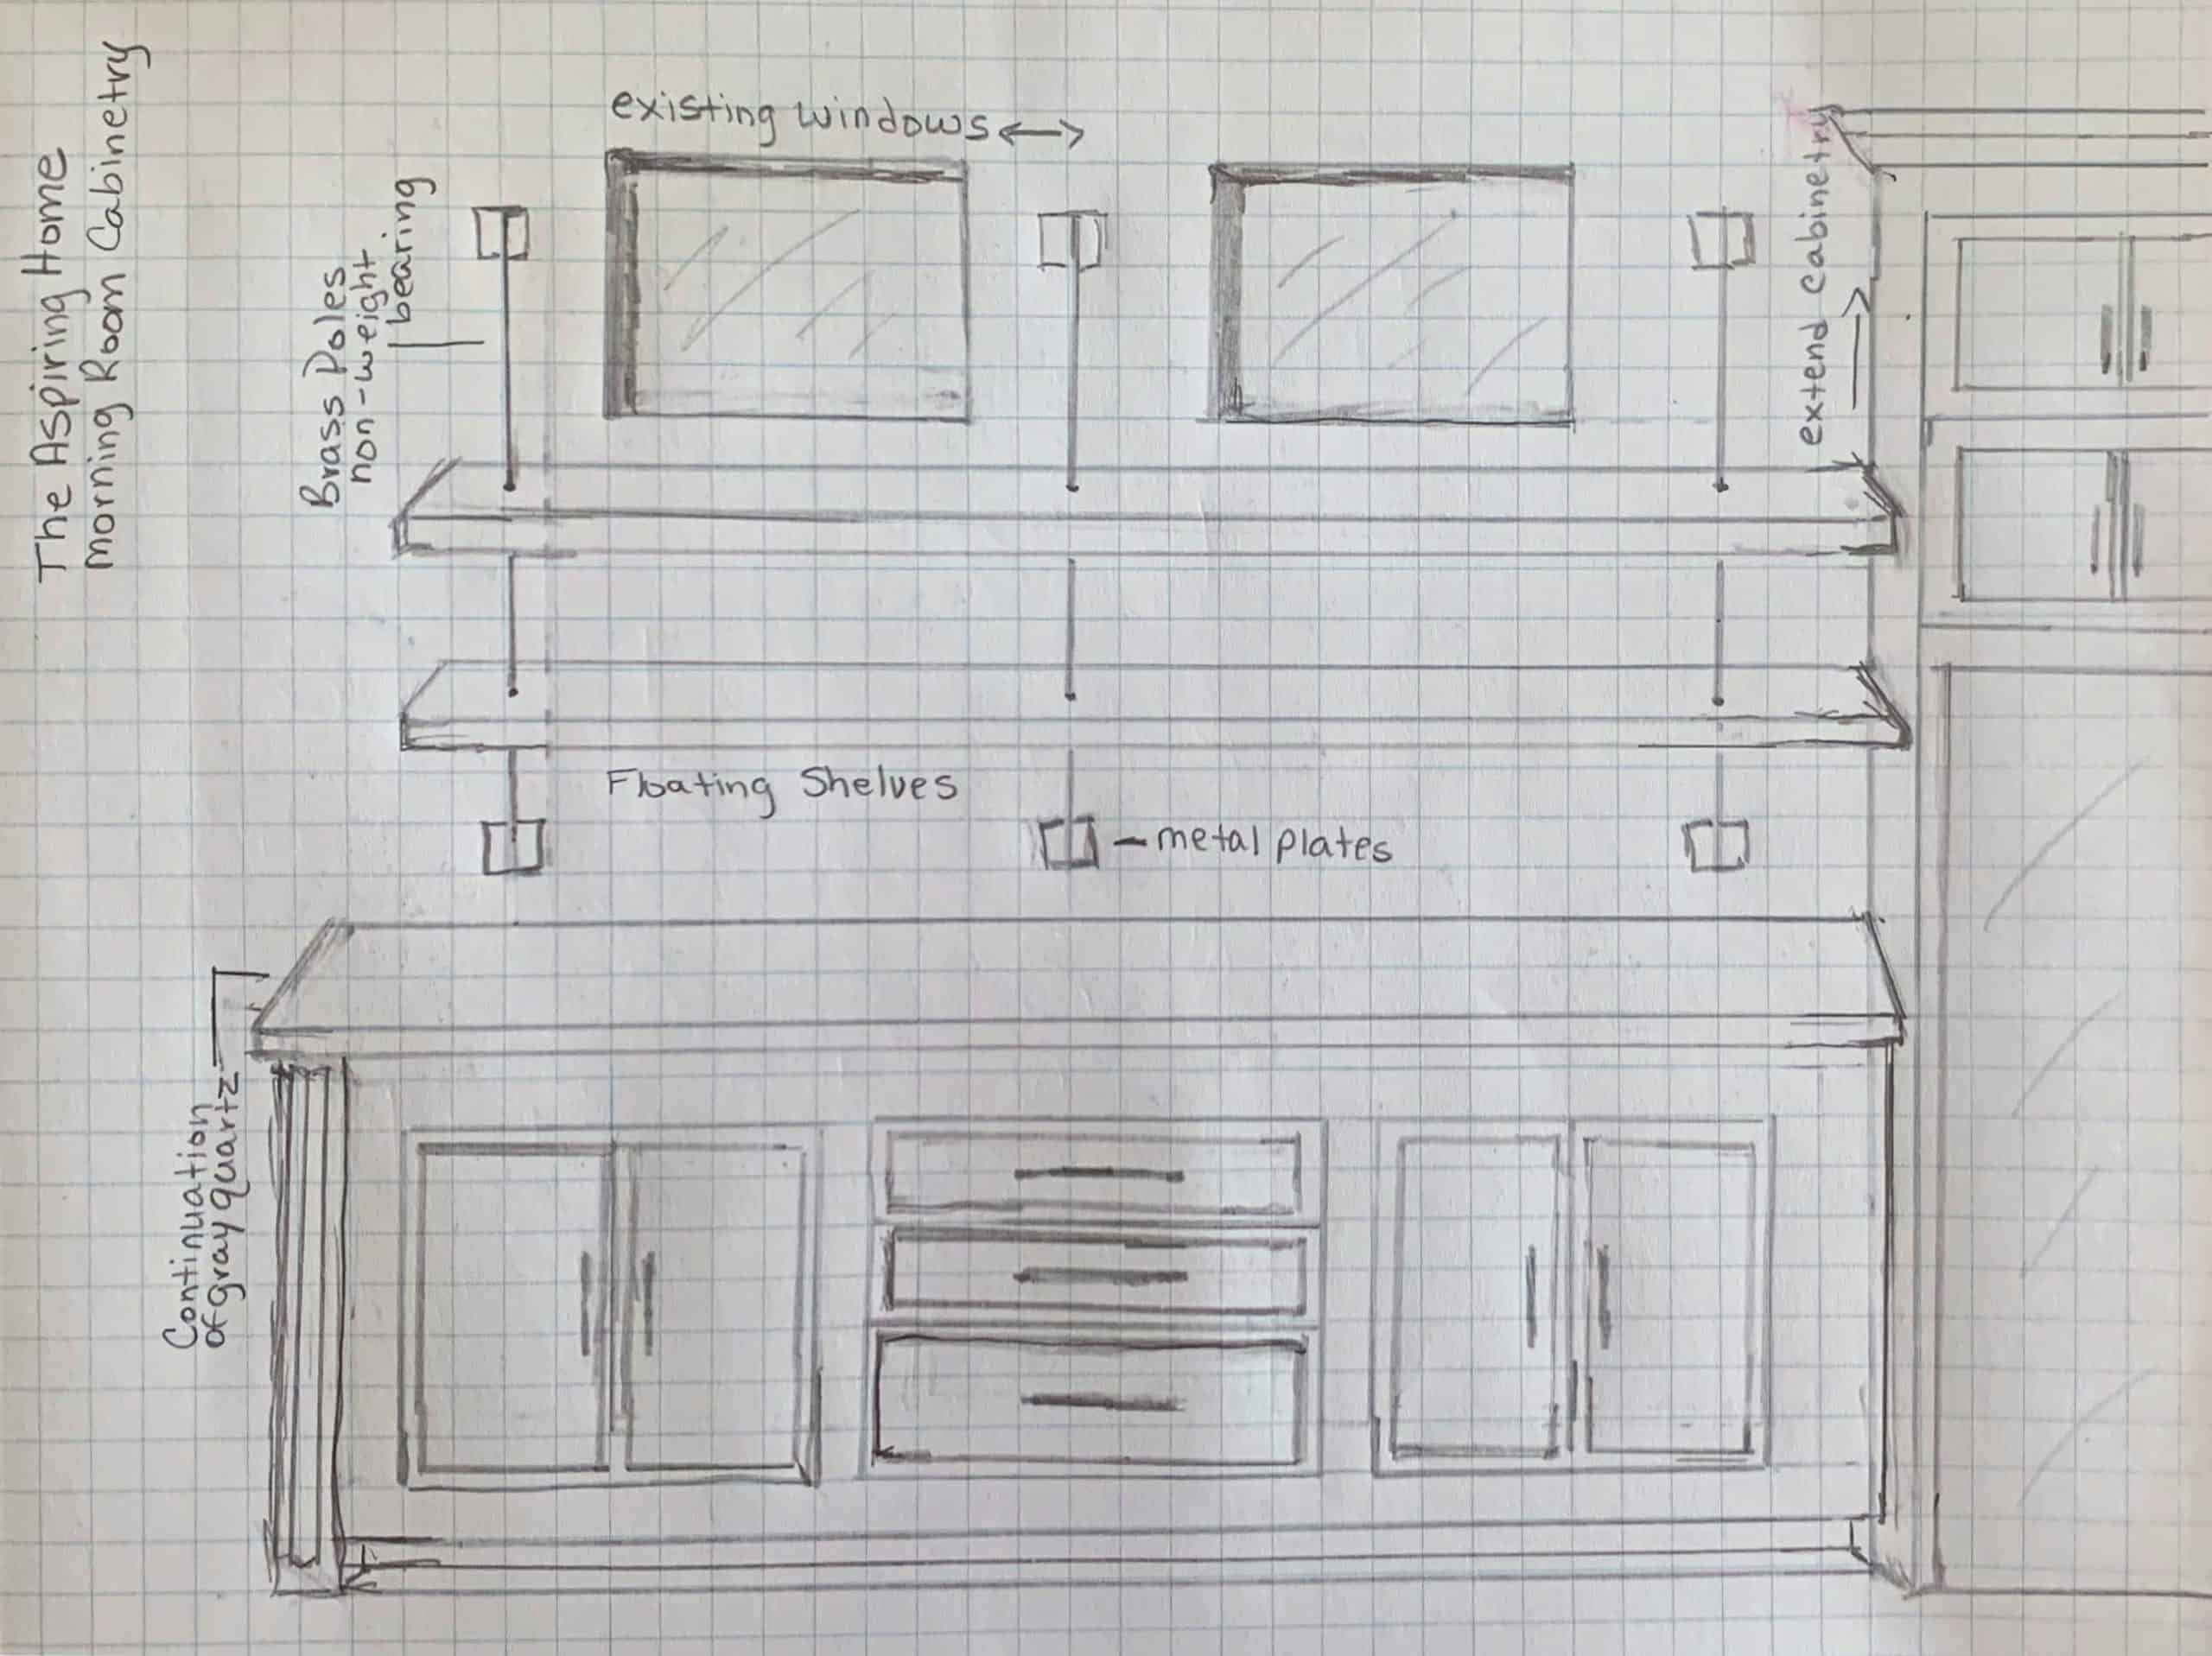 cabinet additions & details